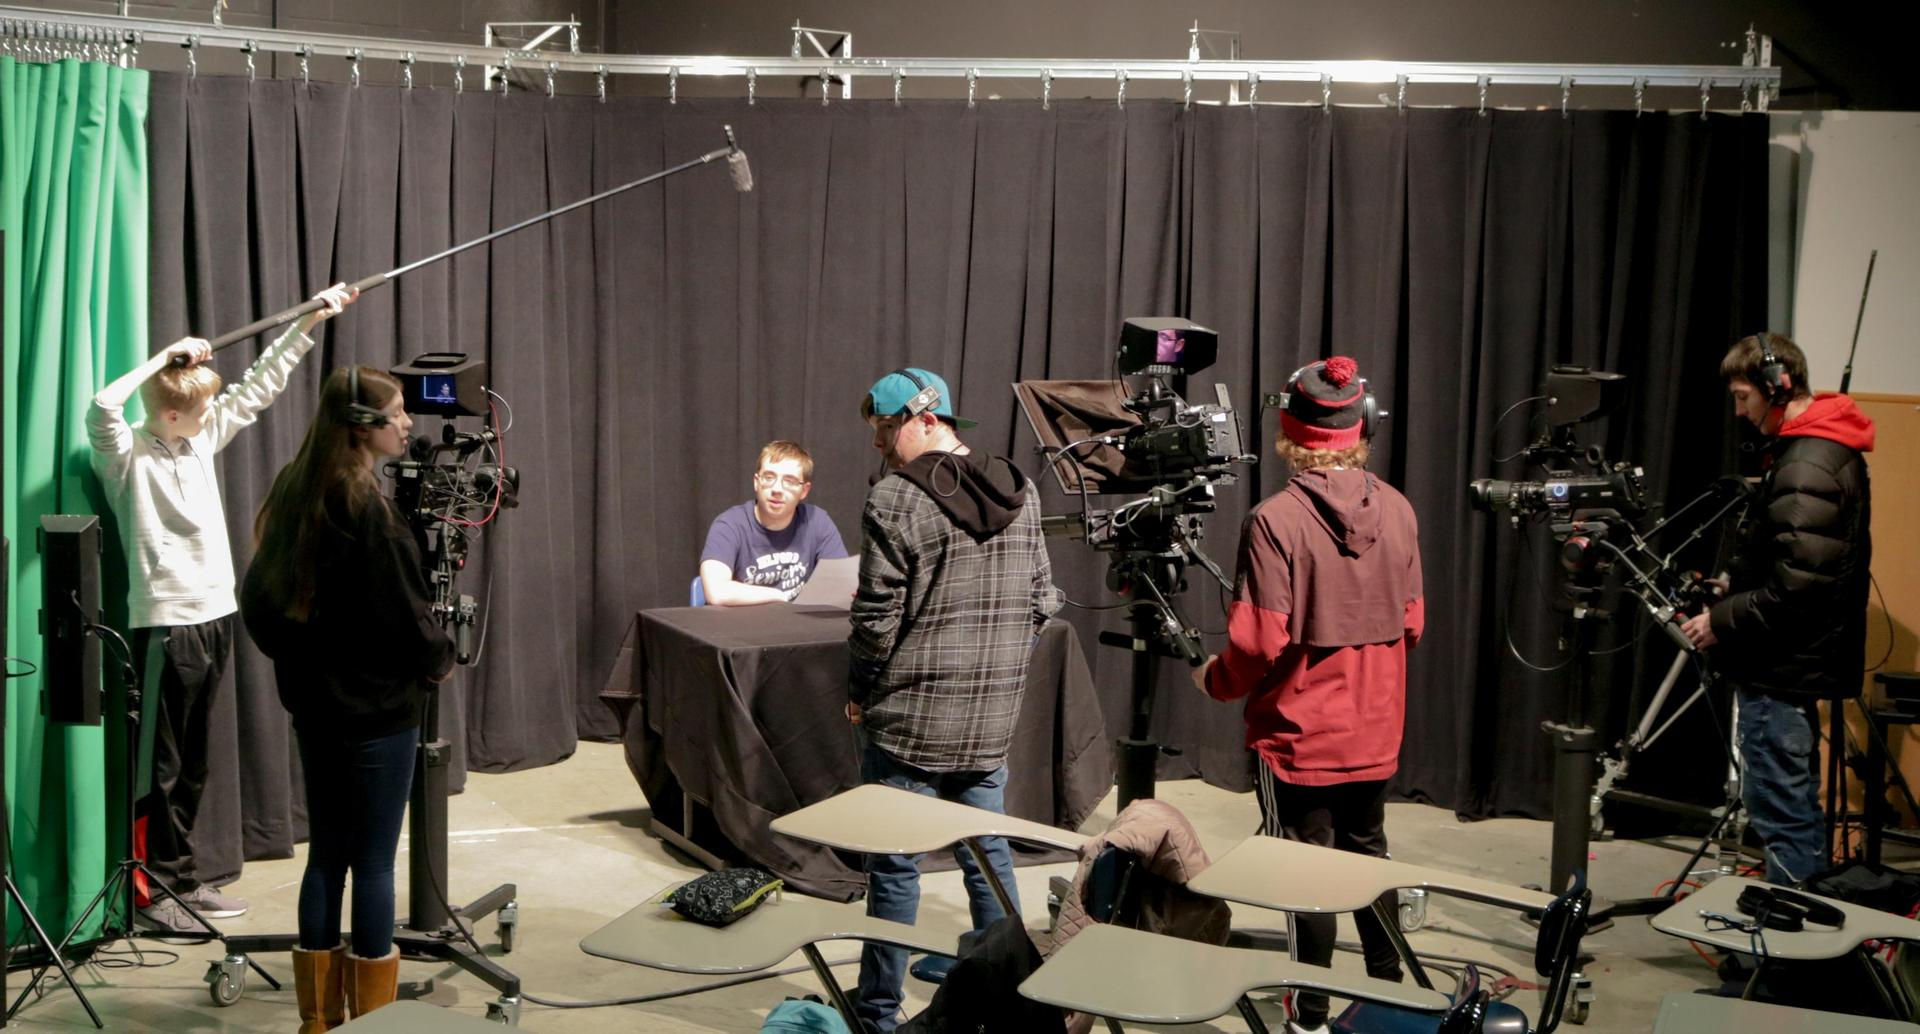 Students doing live filming